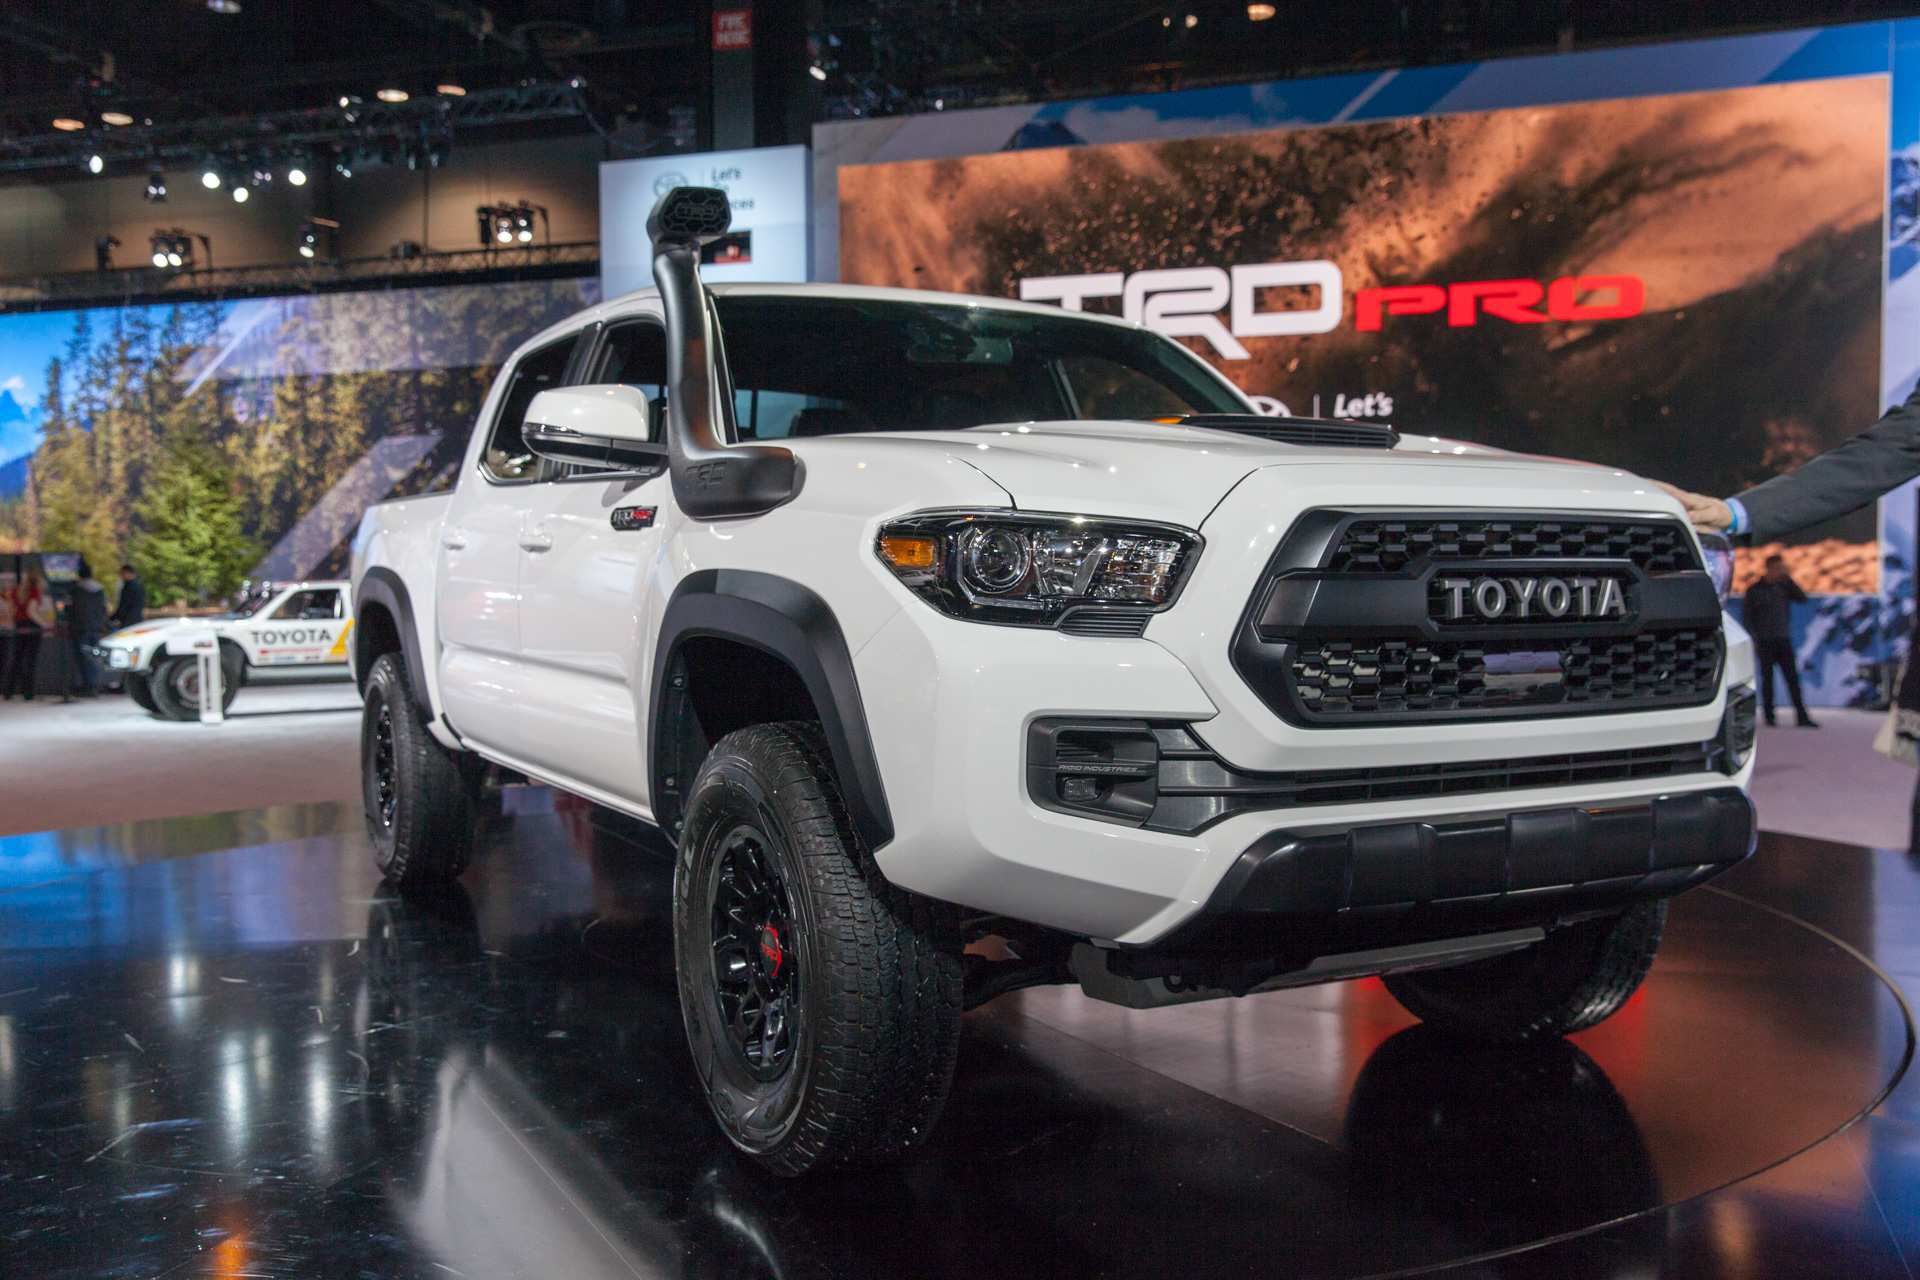 16 All New Toyota Tundra Trd Pro 2019 Price and Review with Toyota Tundra Trd Pro 2019